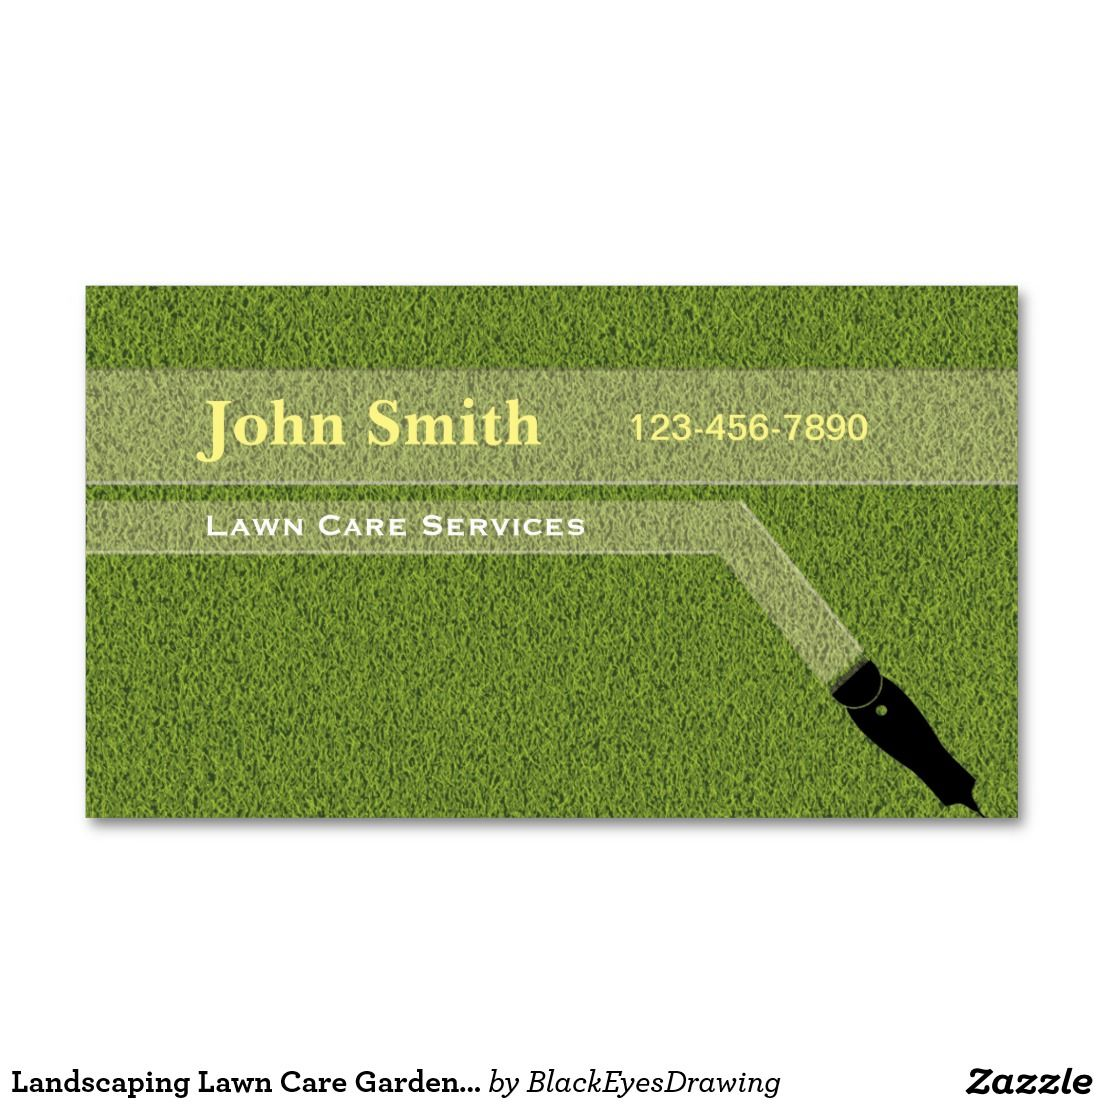 Landscaping Lawn Care Gardening Grass Cutting Business Card   Lawn ...